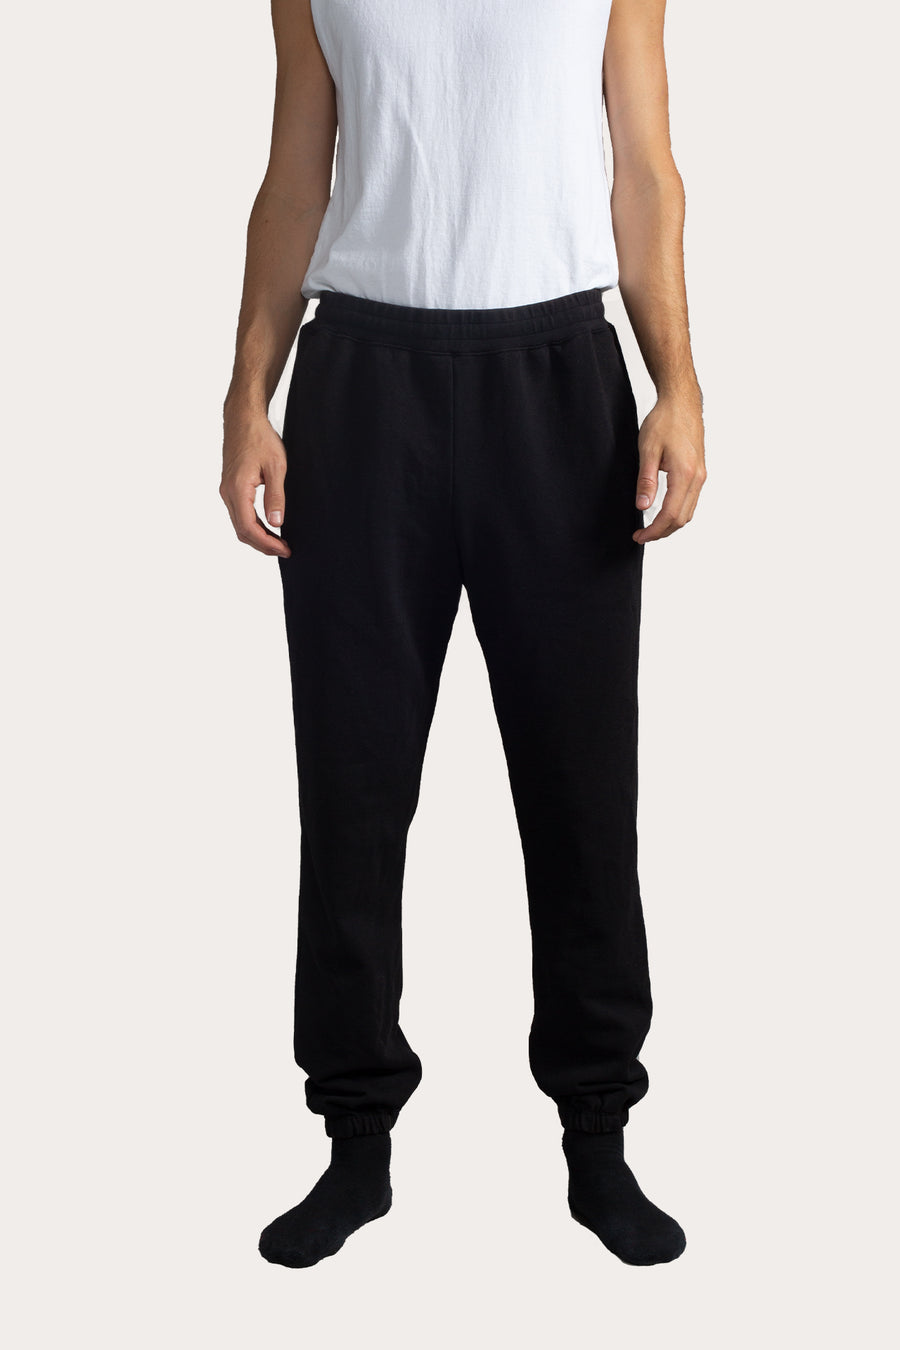 UCR714: UNISEX RECYCLED TERRY SWEATPANTS